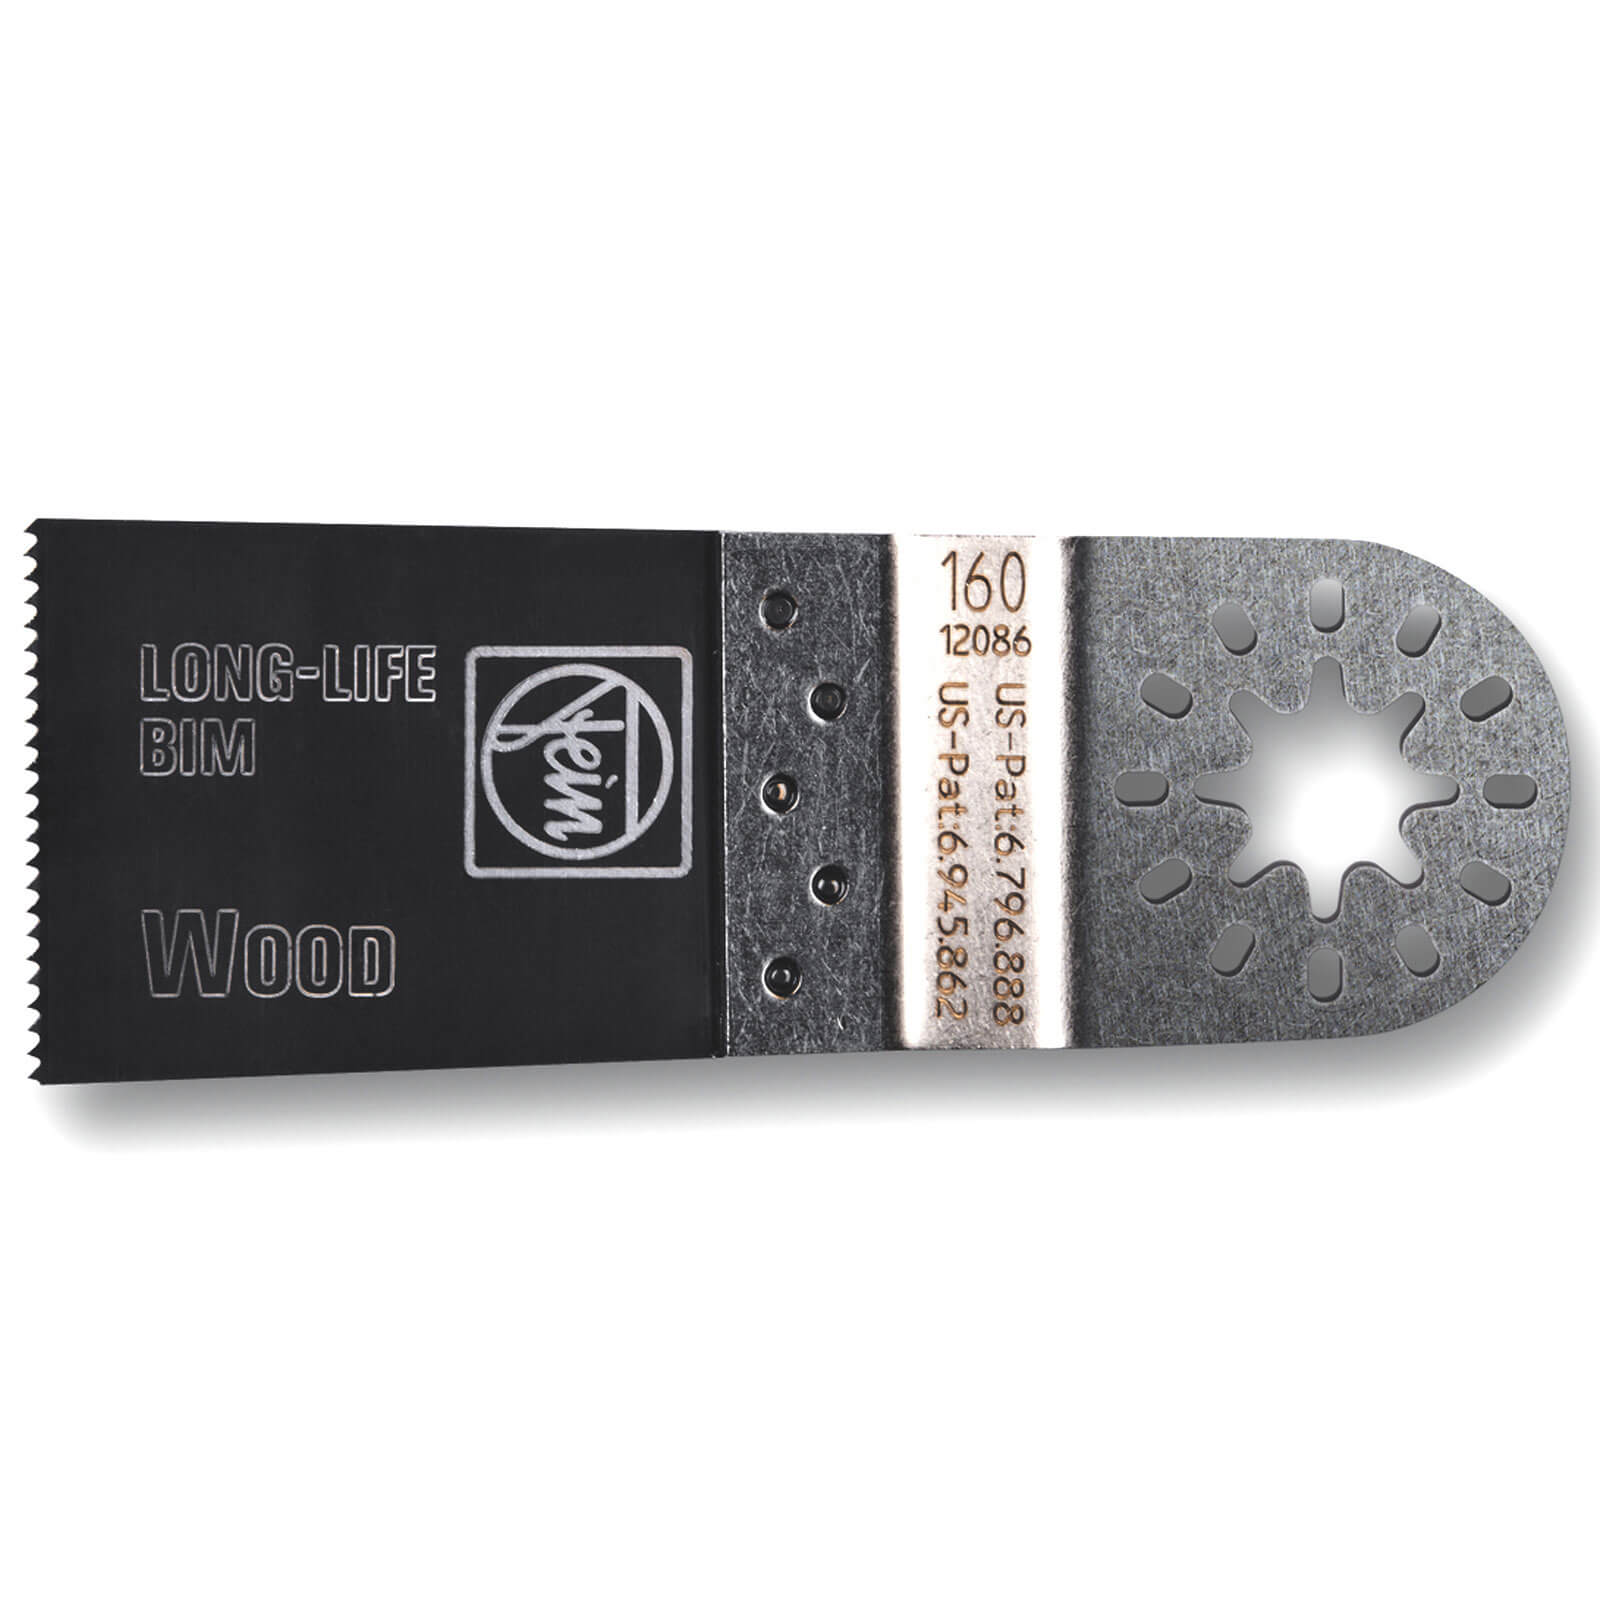 Image of Fein E-Cut BiM Long Life Fine Plunge Saw Blade 35mm Pack of 1